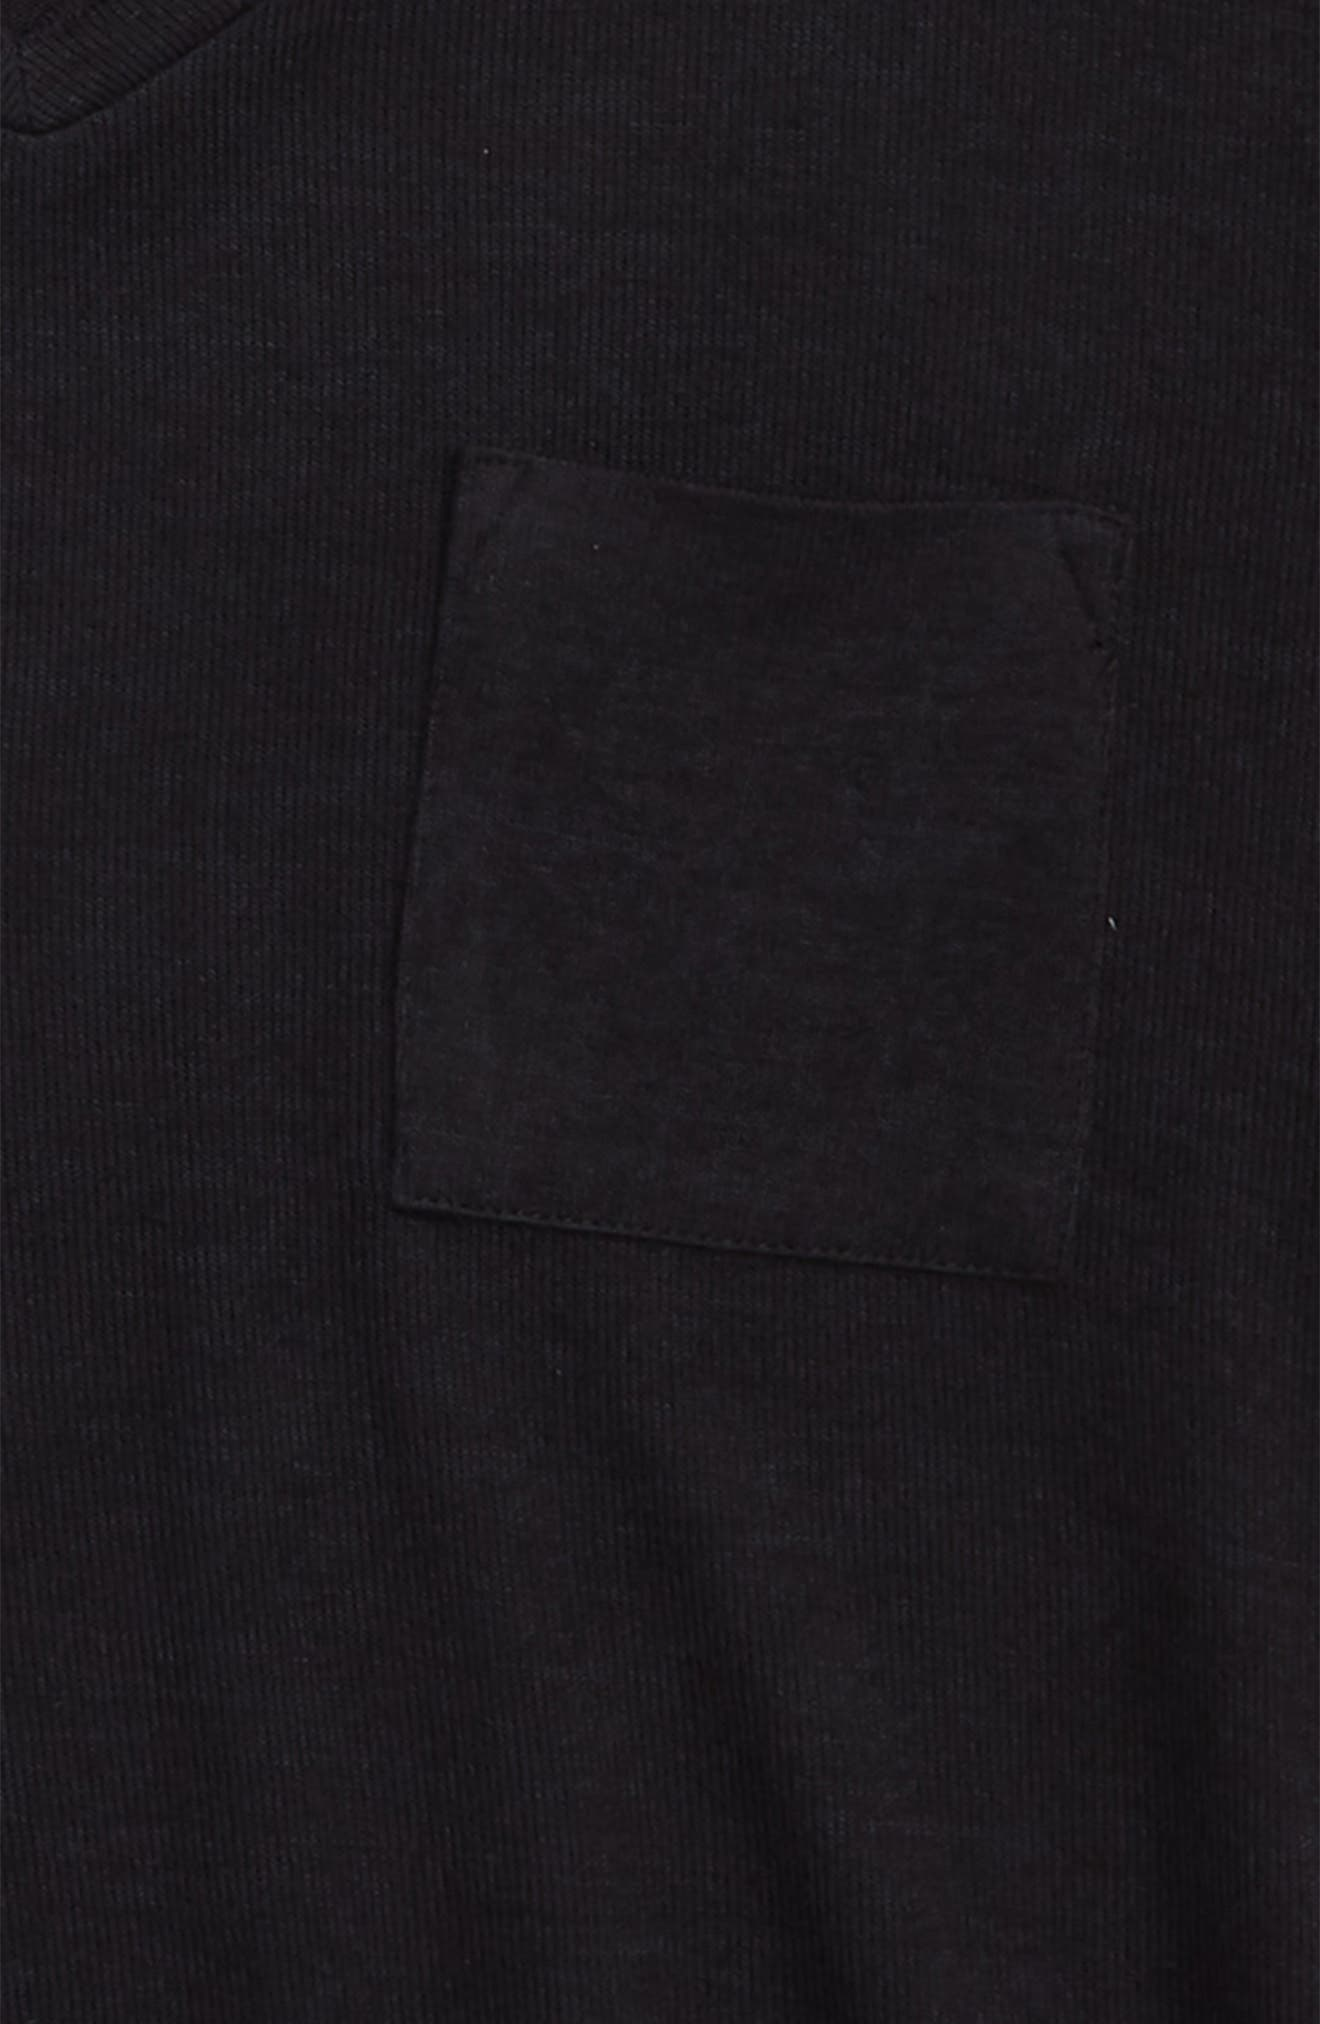 Oversized Pocket Tee,                             Alternate thumbnail 2, color,                             BLACK ROCK